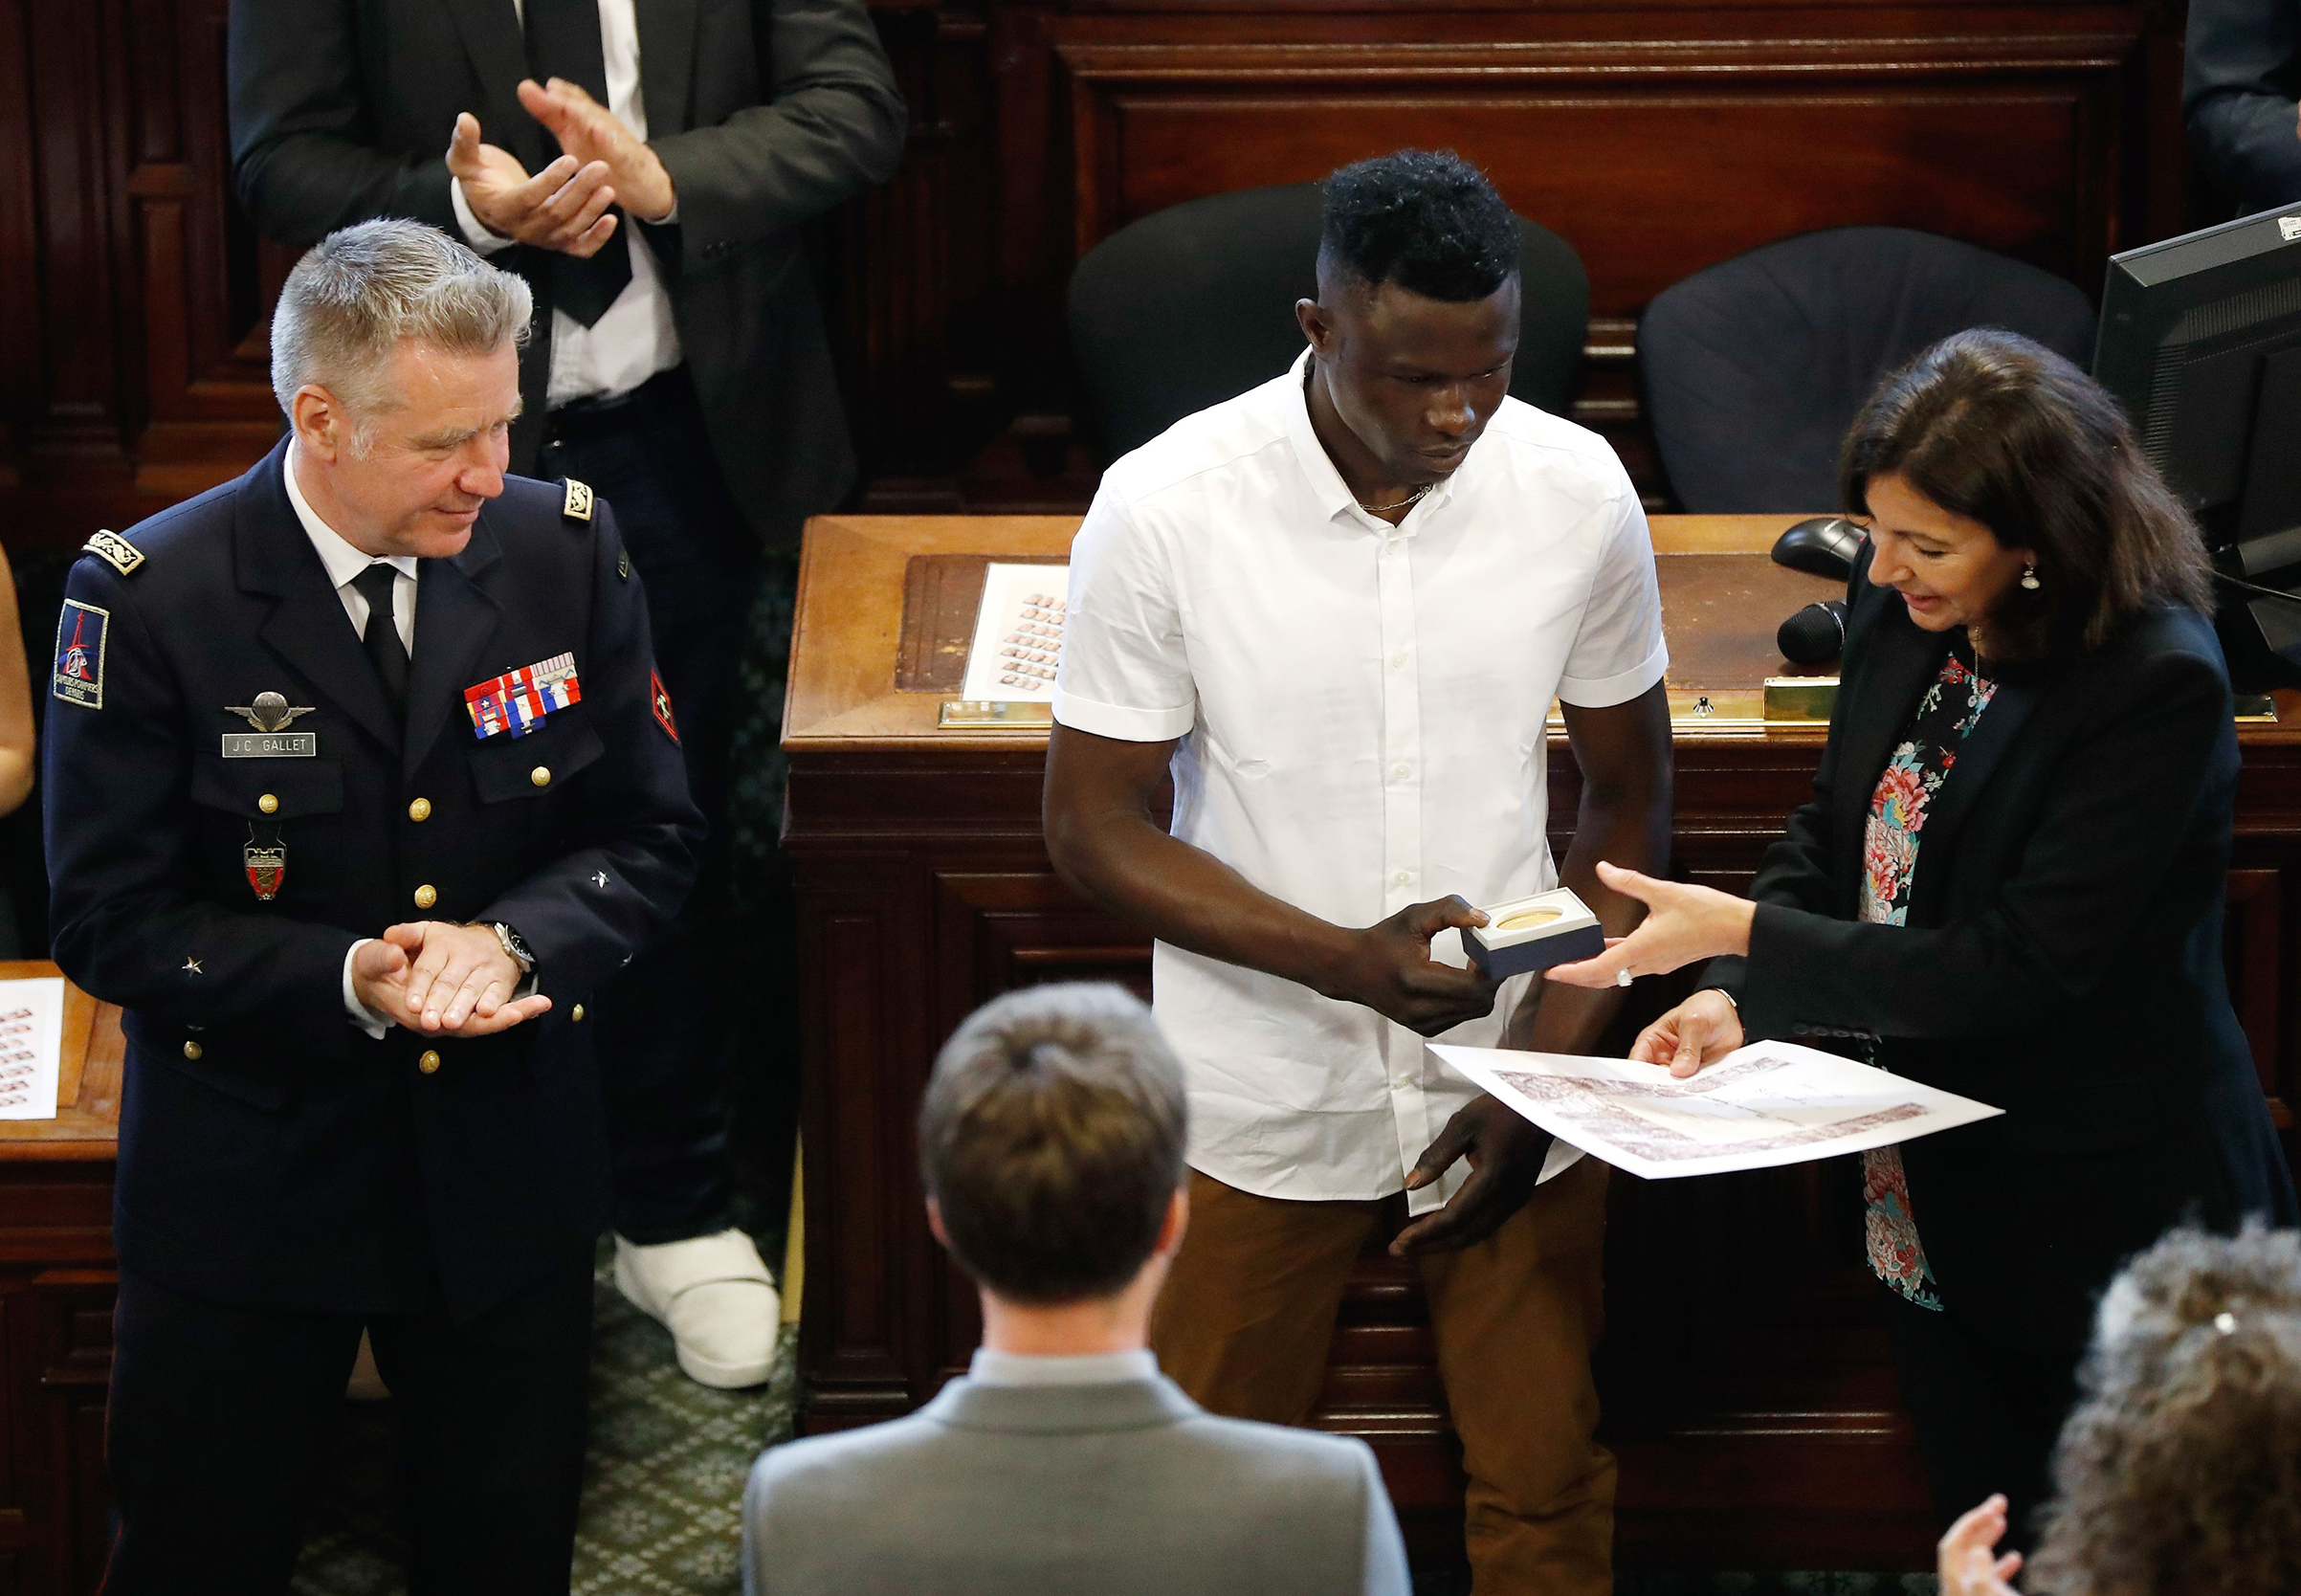 Mamoudou Gassama, center, is awarded with the city's Grand Vermeil medal by Paris' mayor Anne Hidalgo in Paris on June 4, 2018.